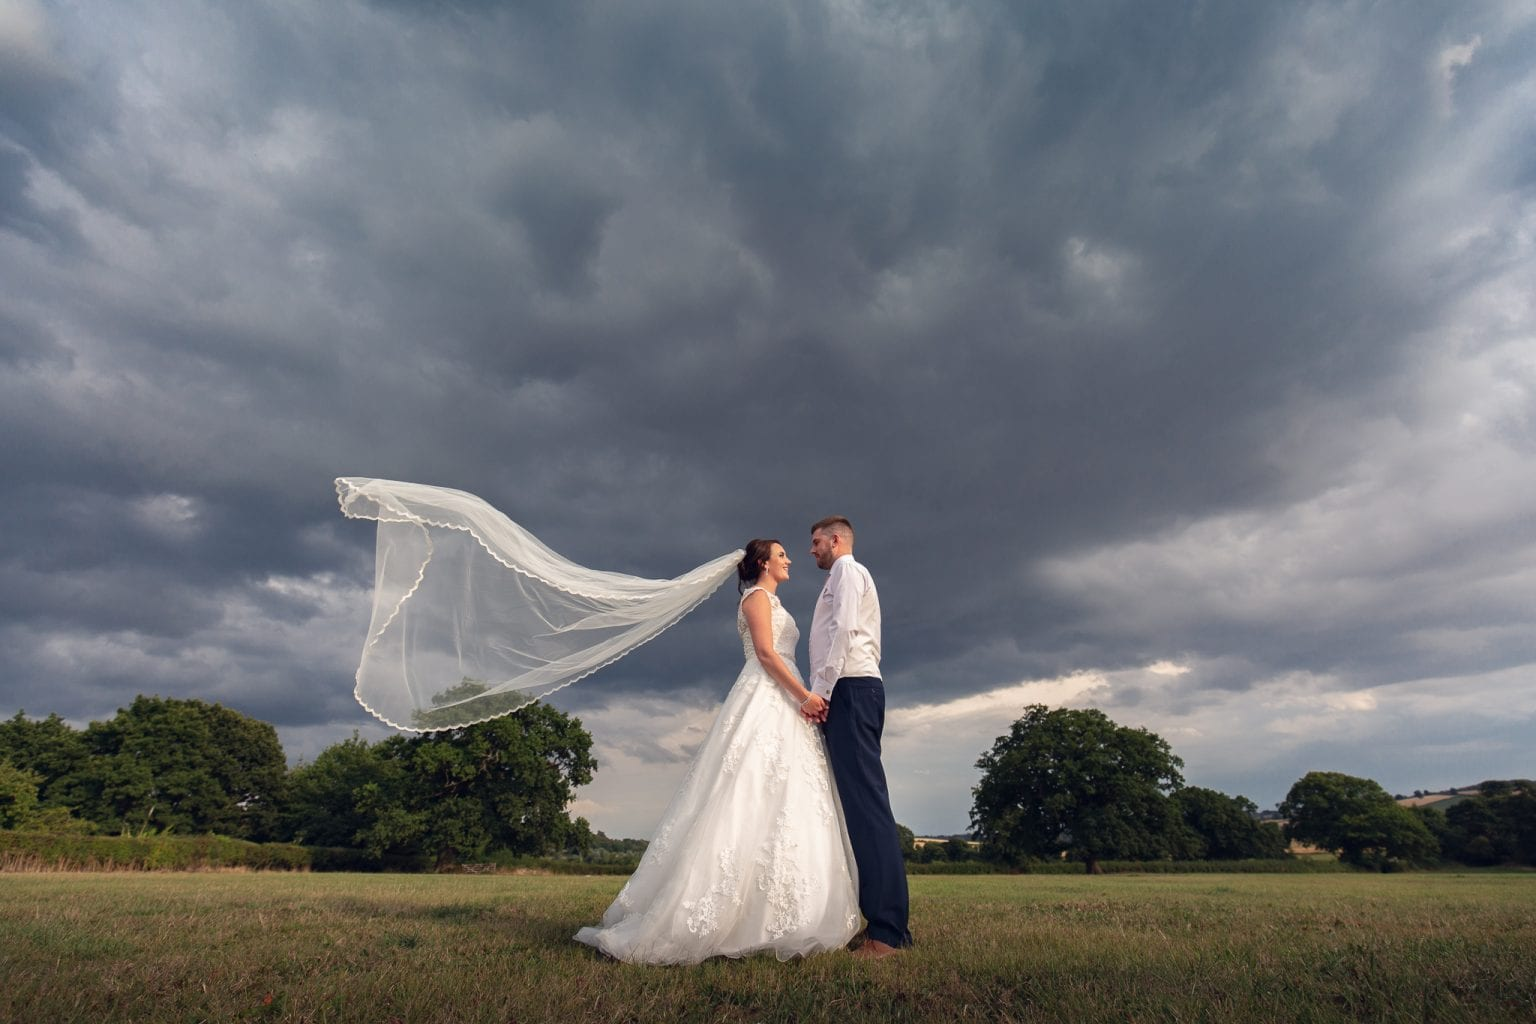 lnog eaton wedding photographer